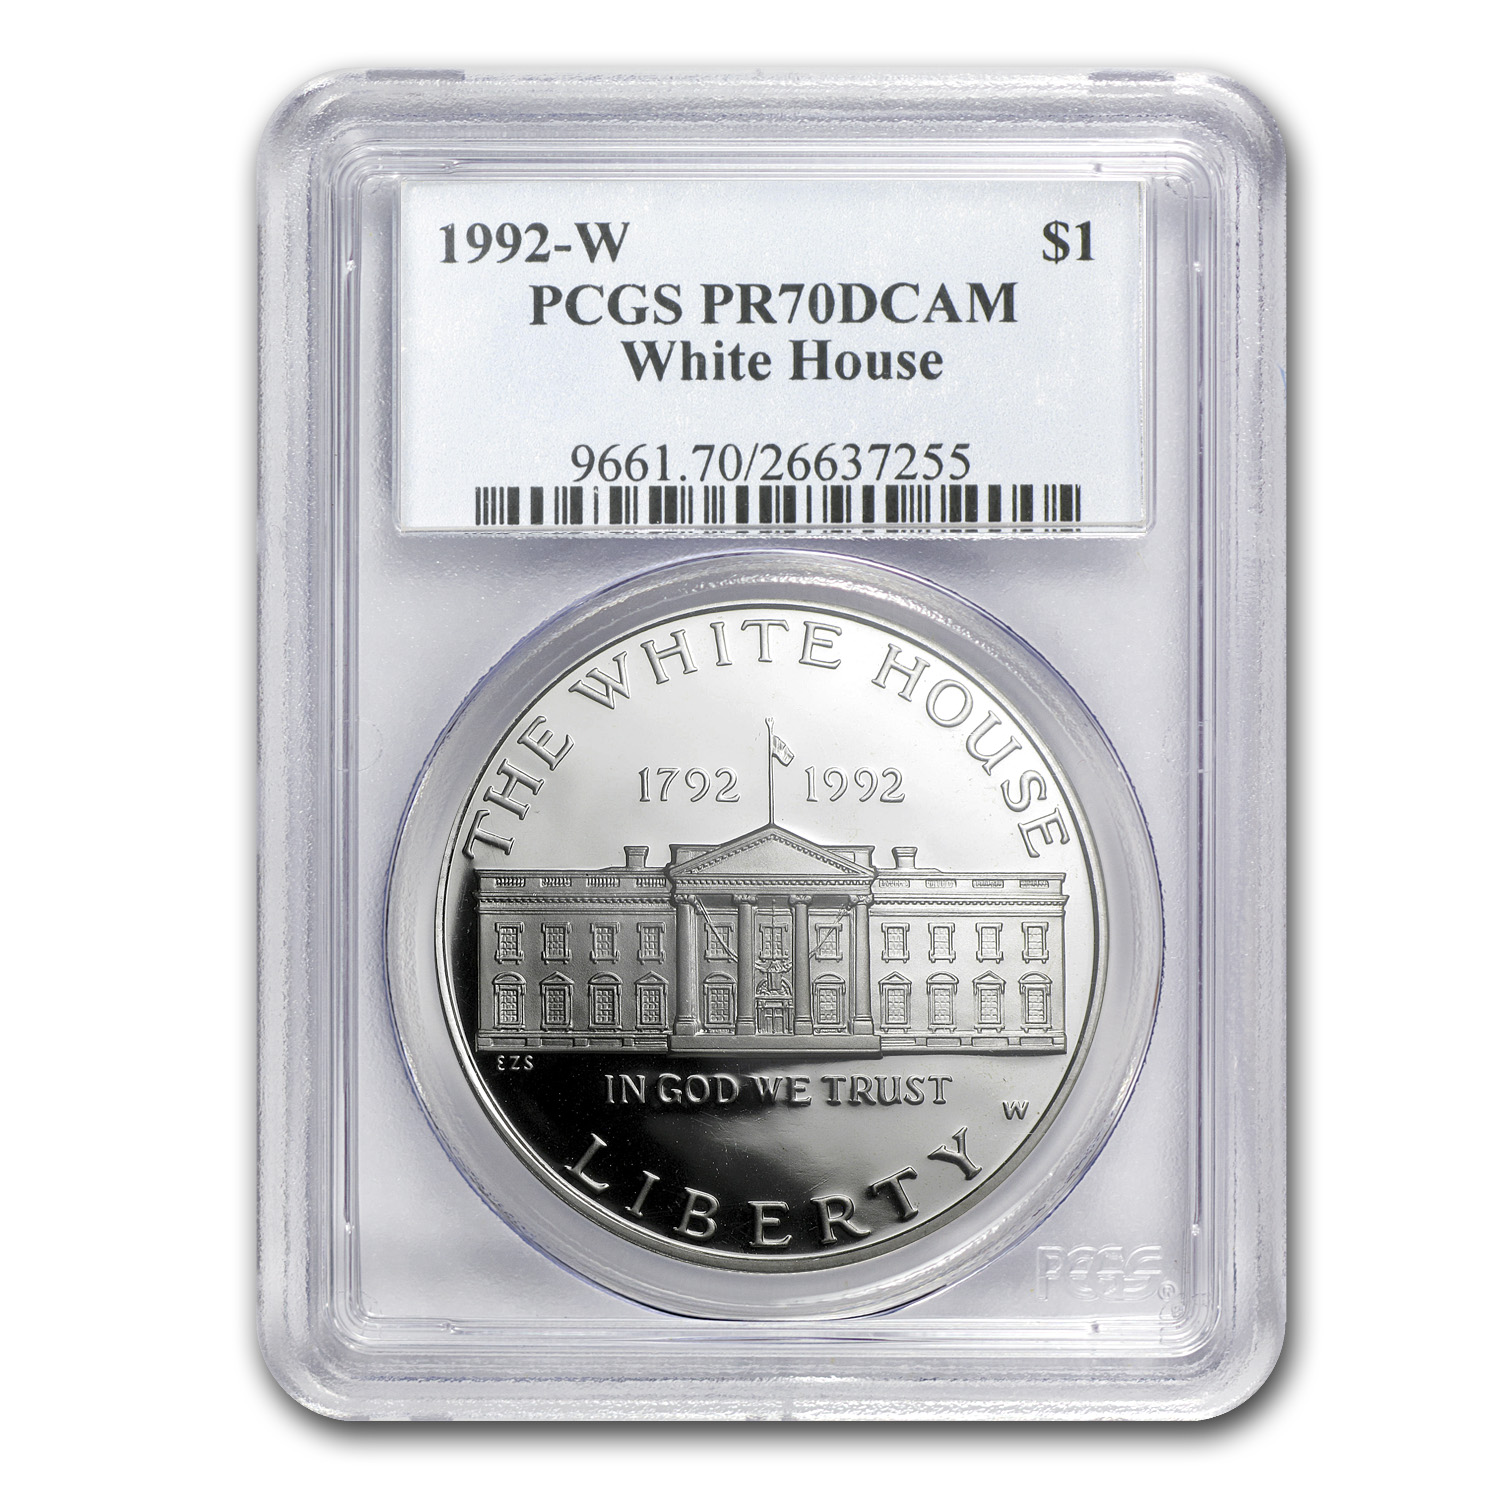 1992-W White House $1 Silver Commemorative - PR-70 DCAM PCGS